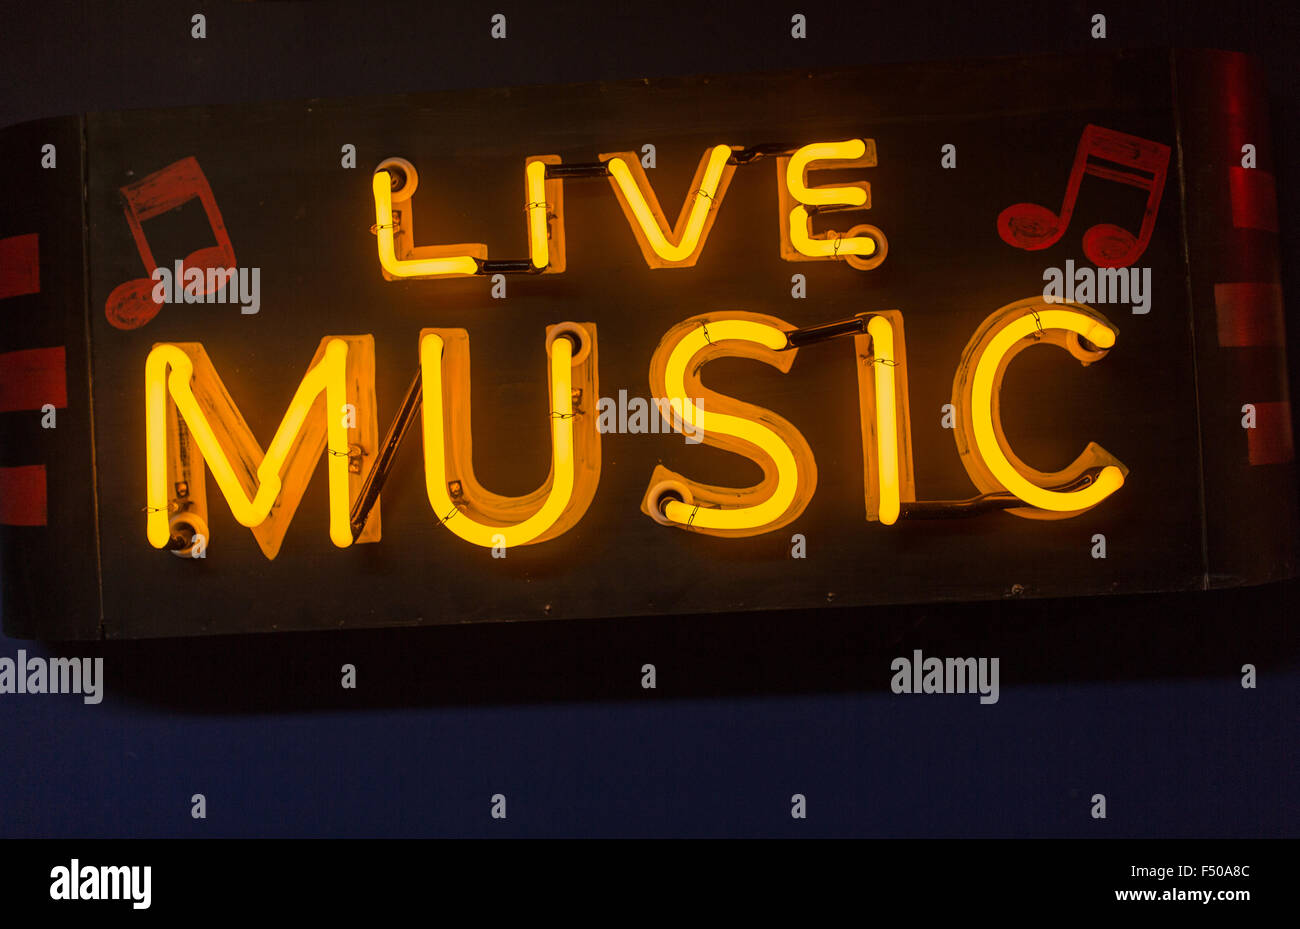 Neon sign promoting live music - Stock Image